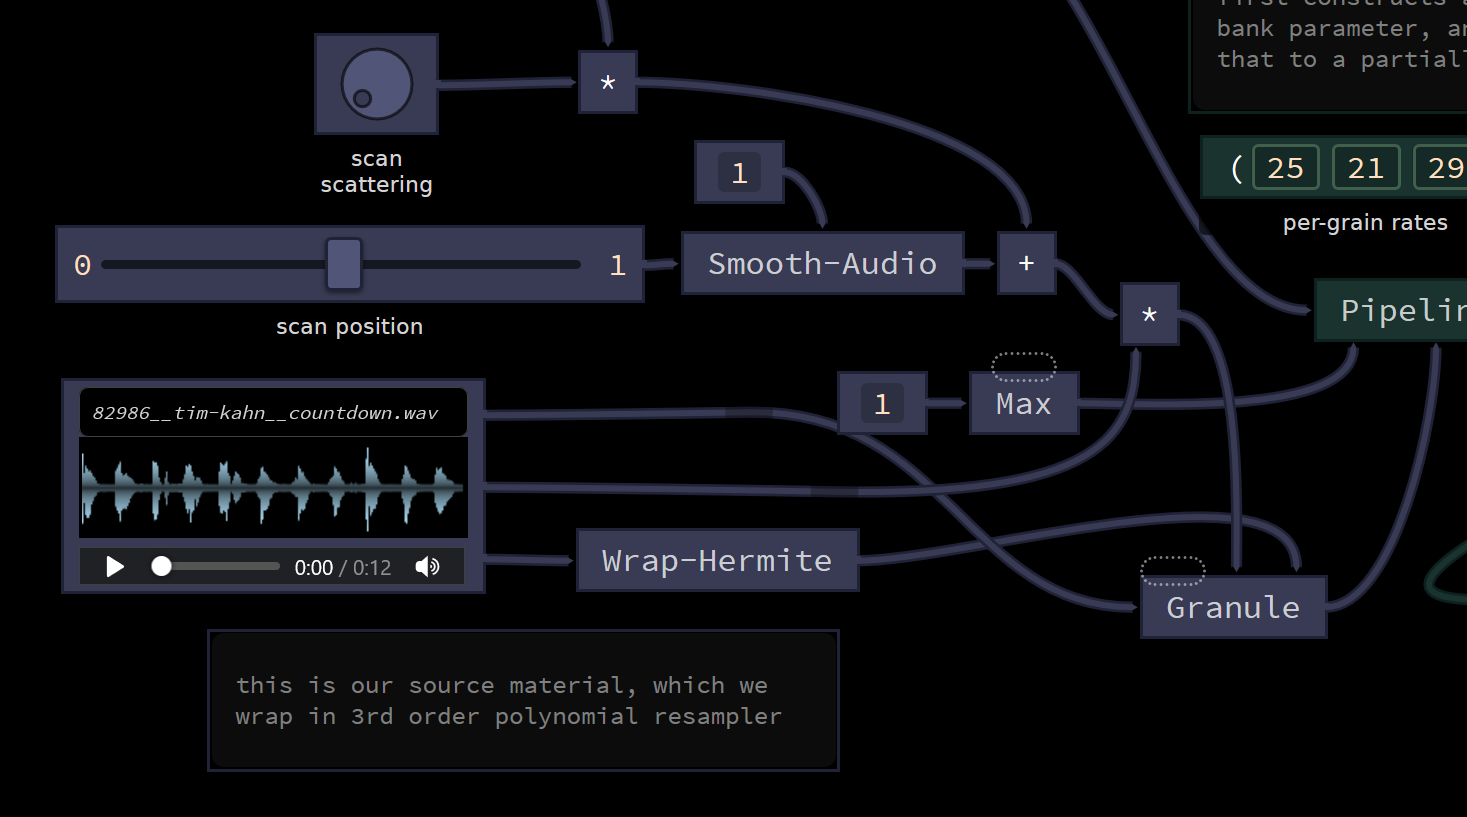 Extract from the granular synthesis patch